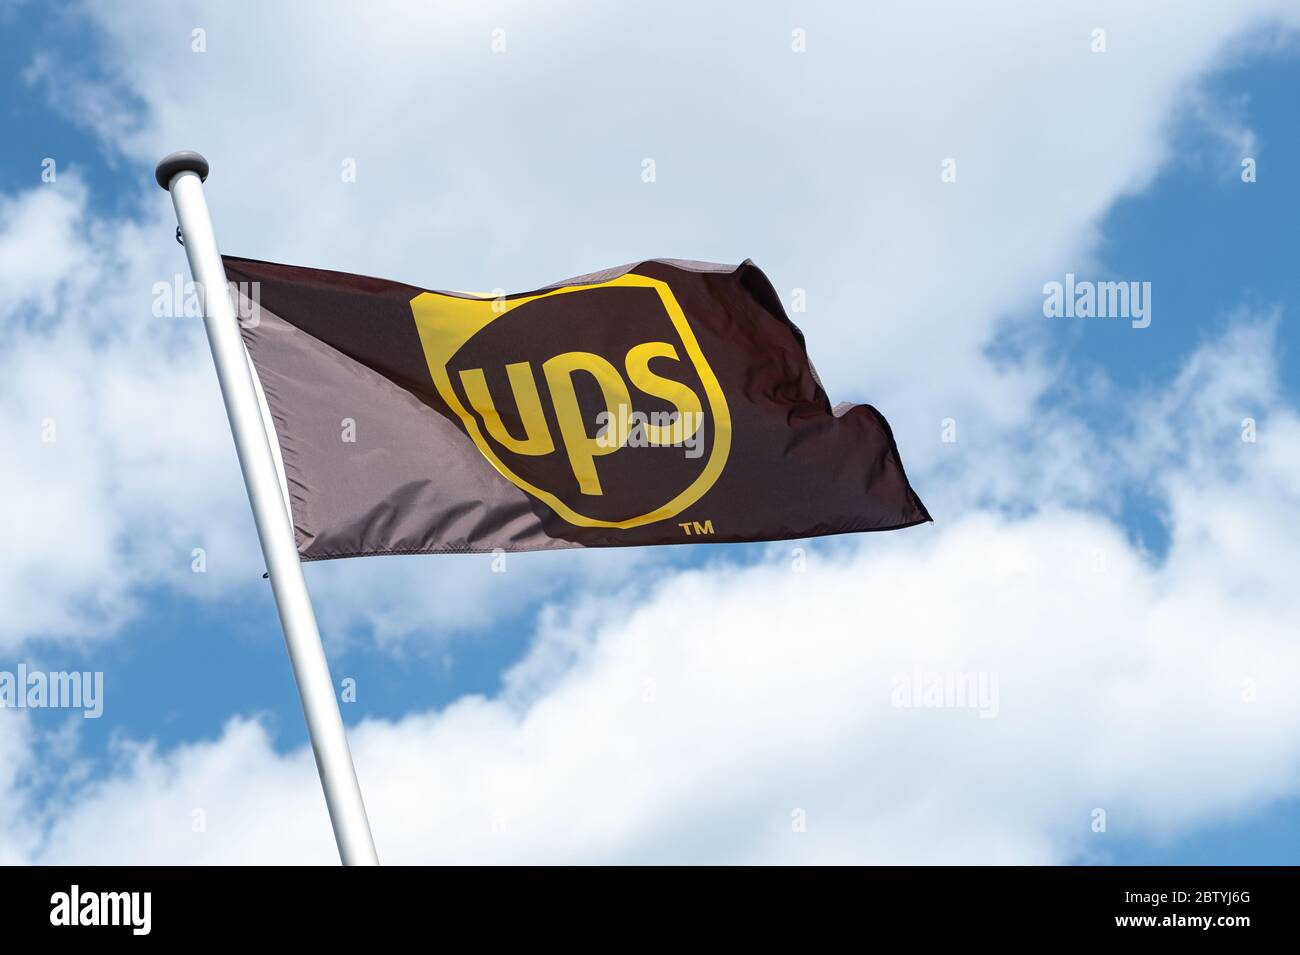 Langenhagen Germany 28th May 2020 The Logo Of The Postal Service Provider Ups Can Be Seen